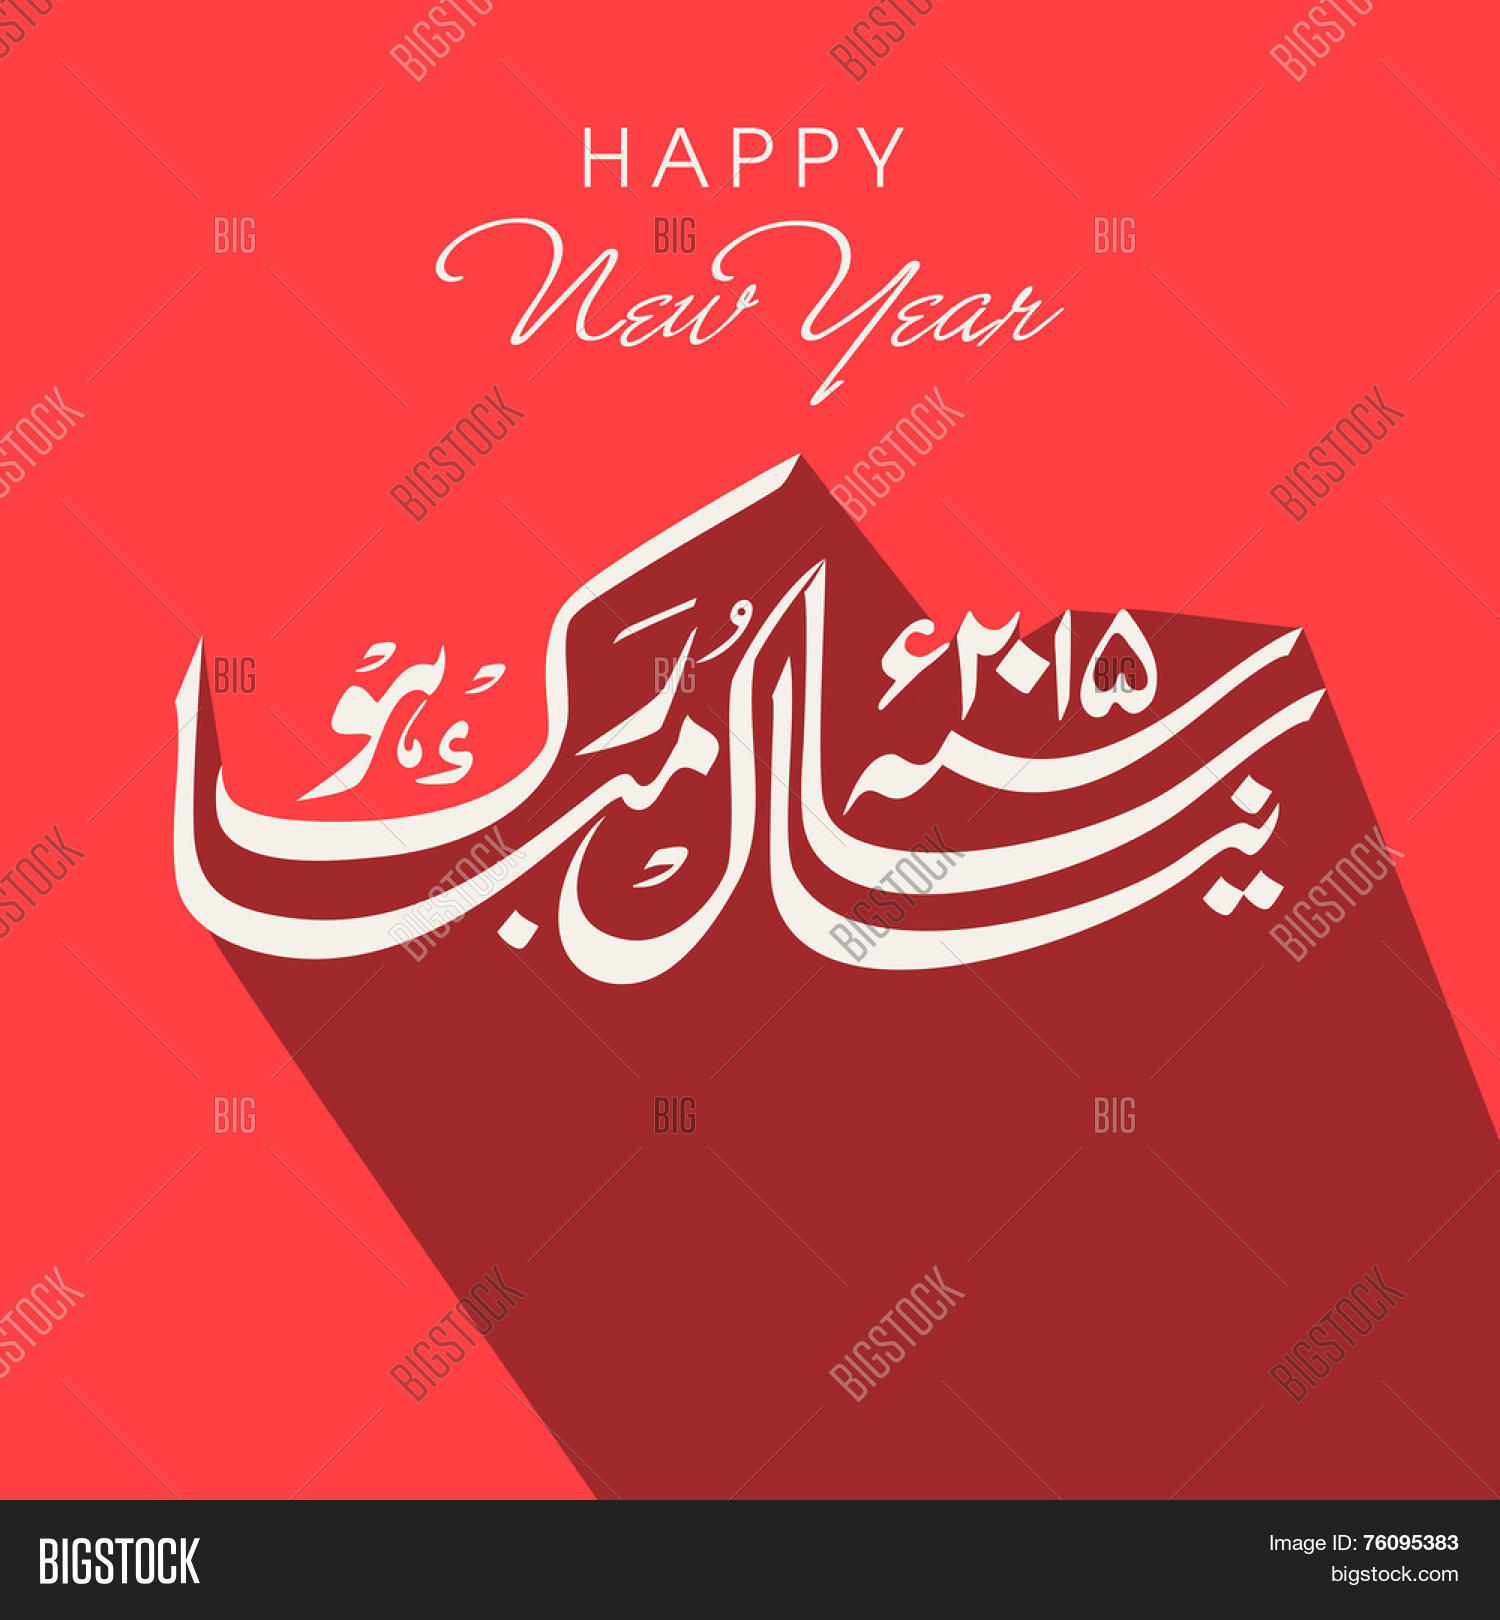 urdu calligraphy of text naya saal mubarak ho happy new year 2015 on red